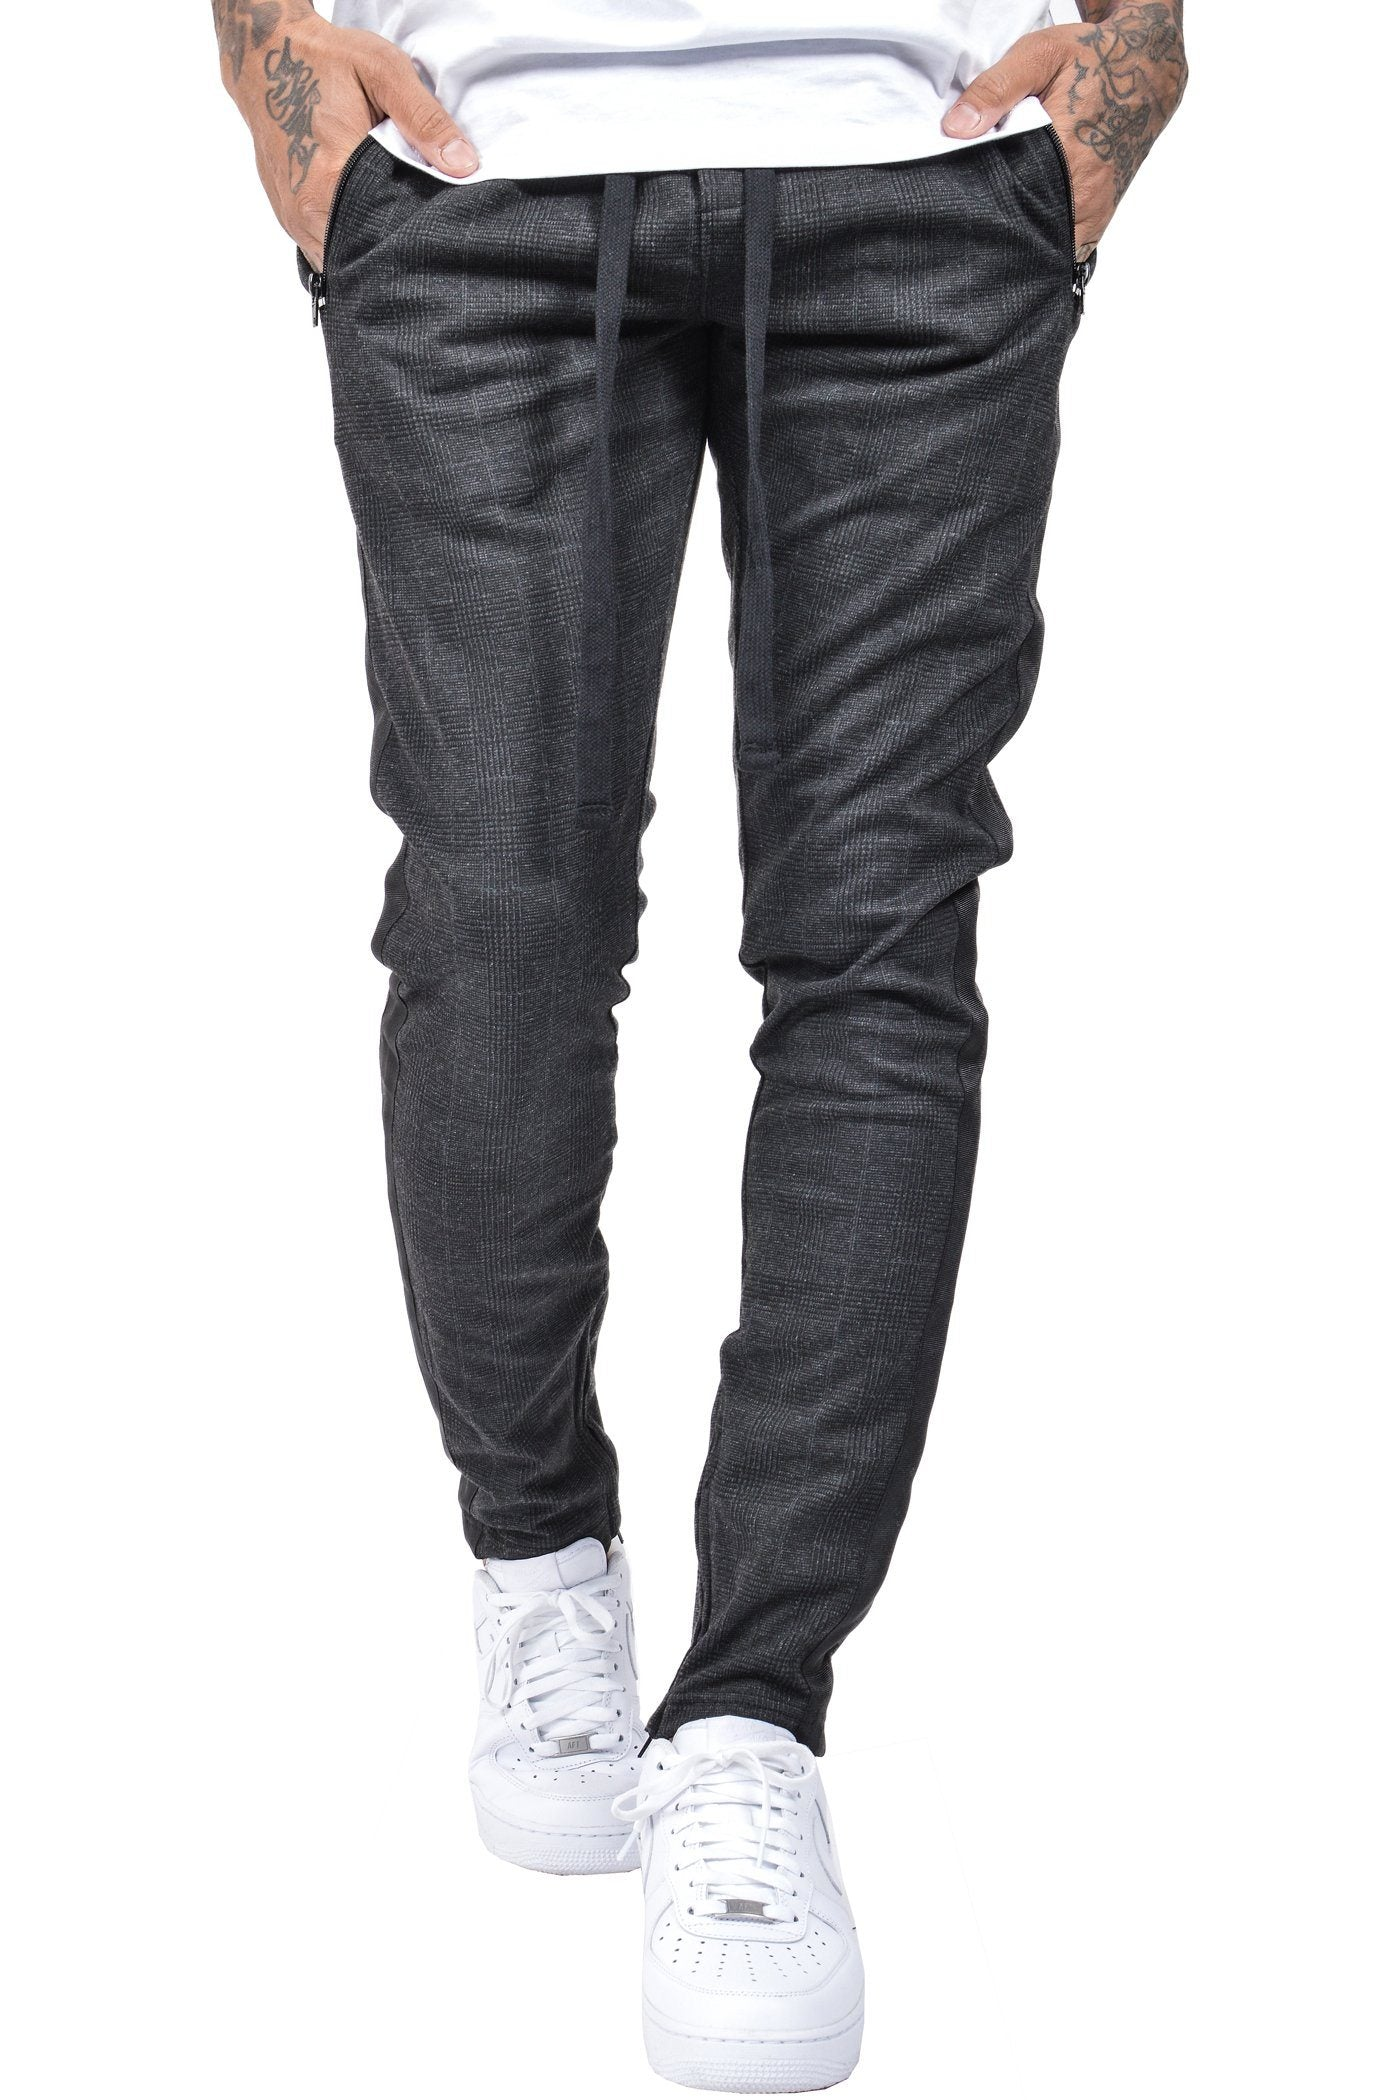 Benjamin Stripe Pants Antra-Black - PEGADOR - Dominate the Hype